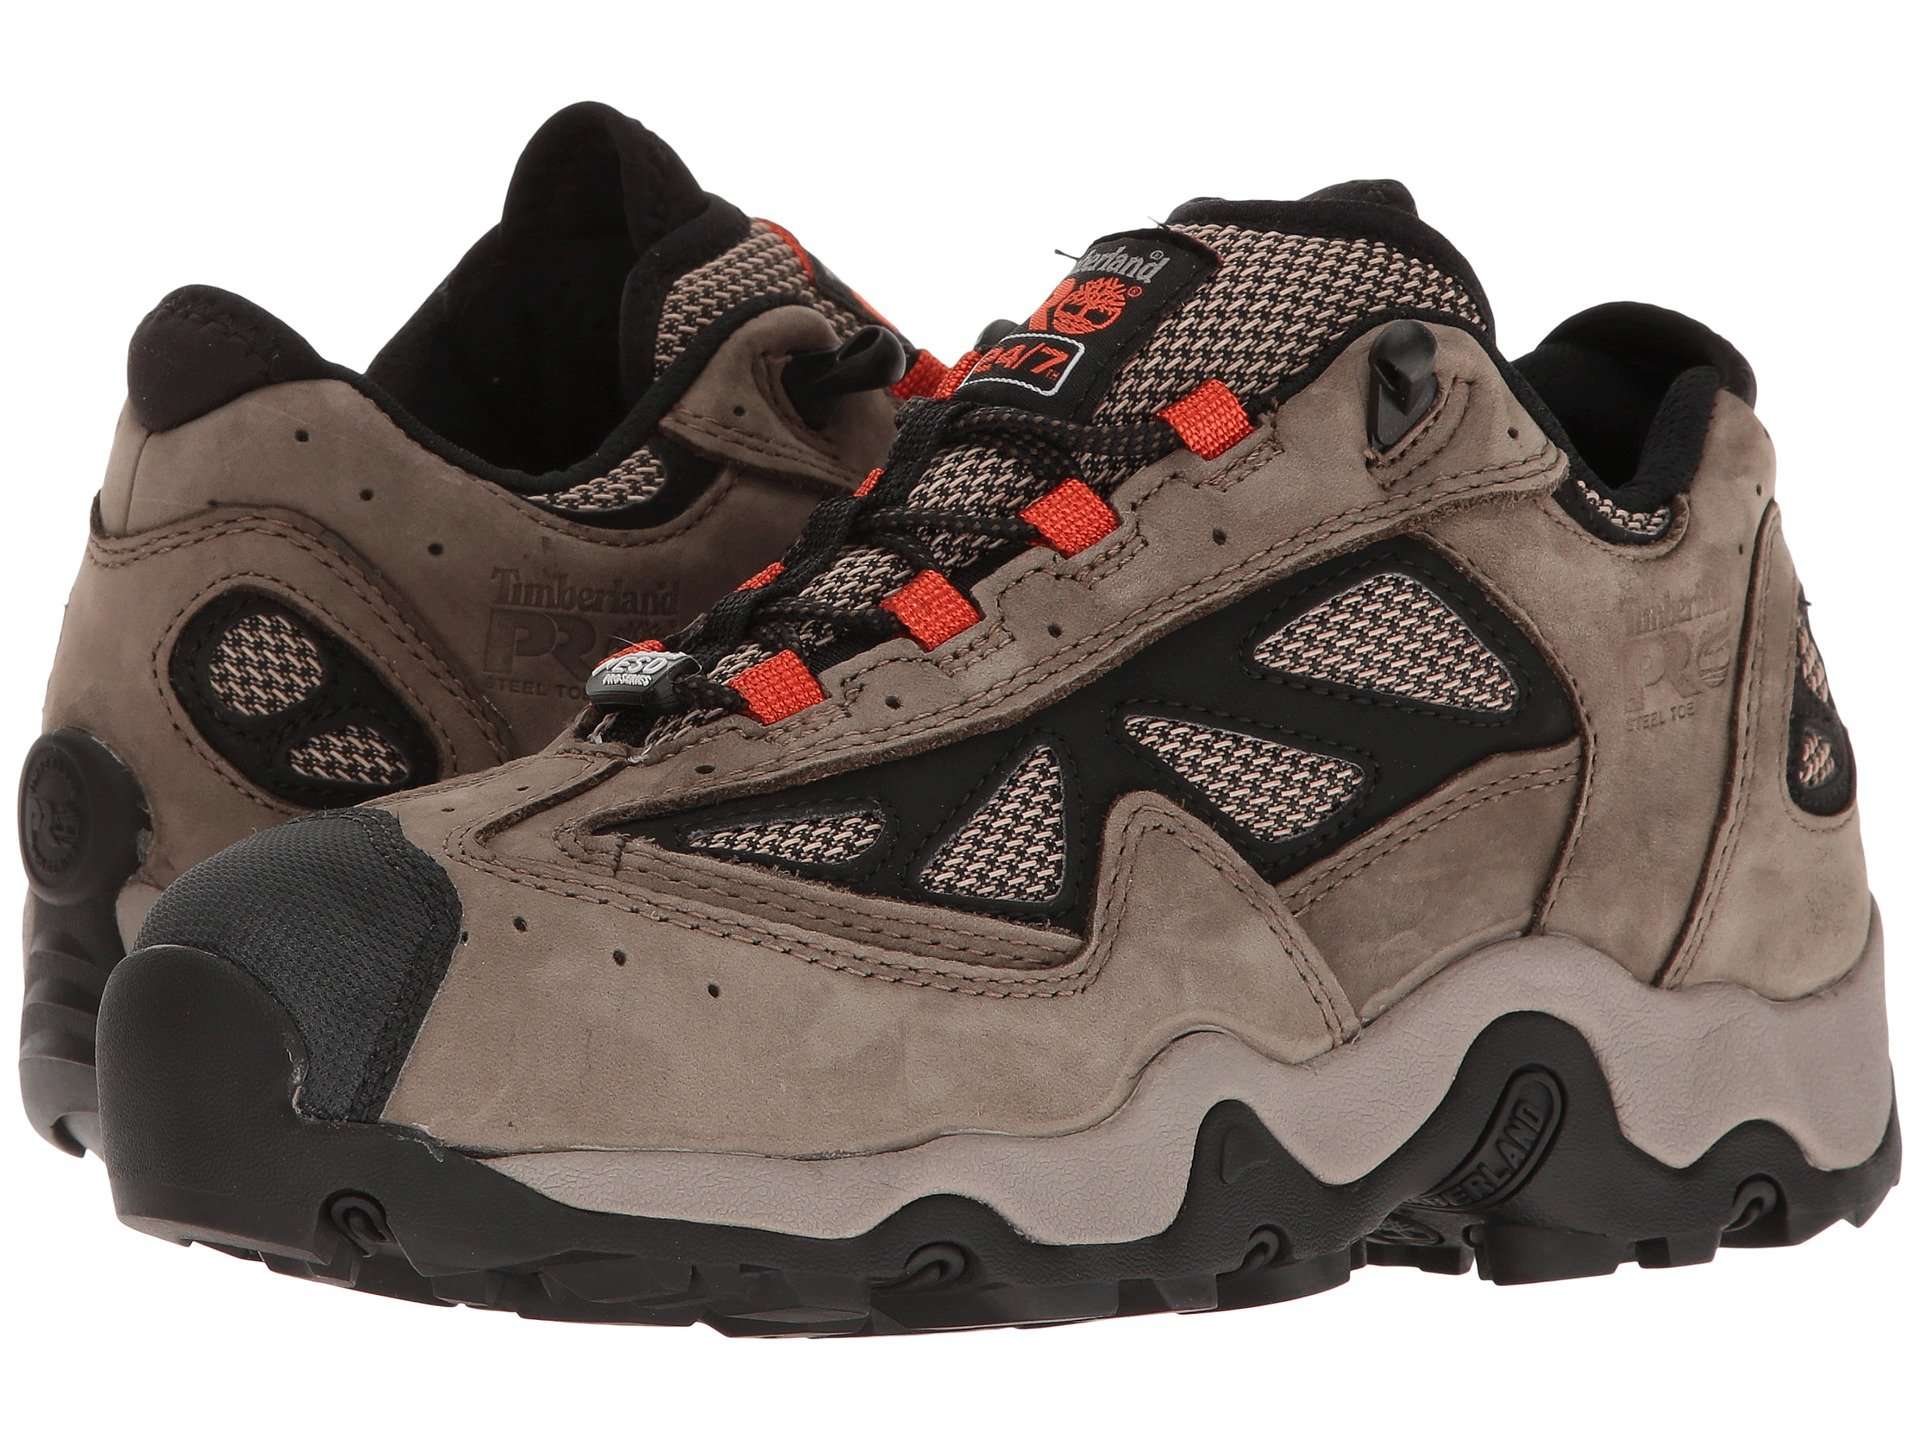 Timberland Pro Gorge Mid Esd Steel Toe At Zappos Com